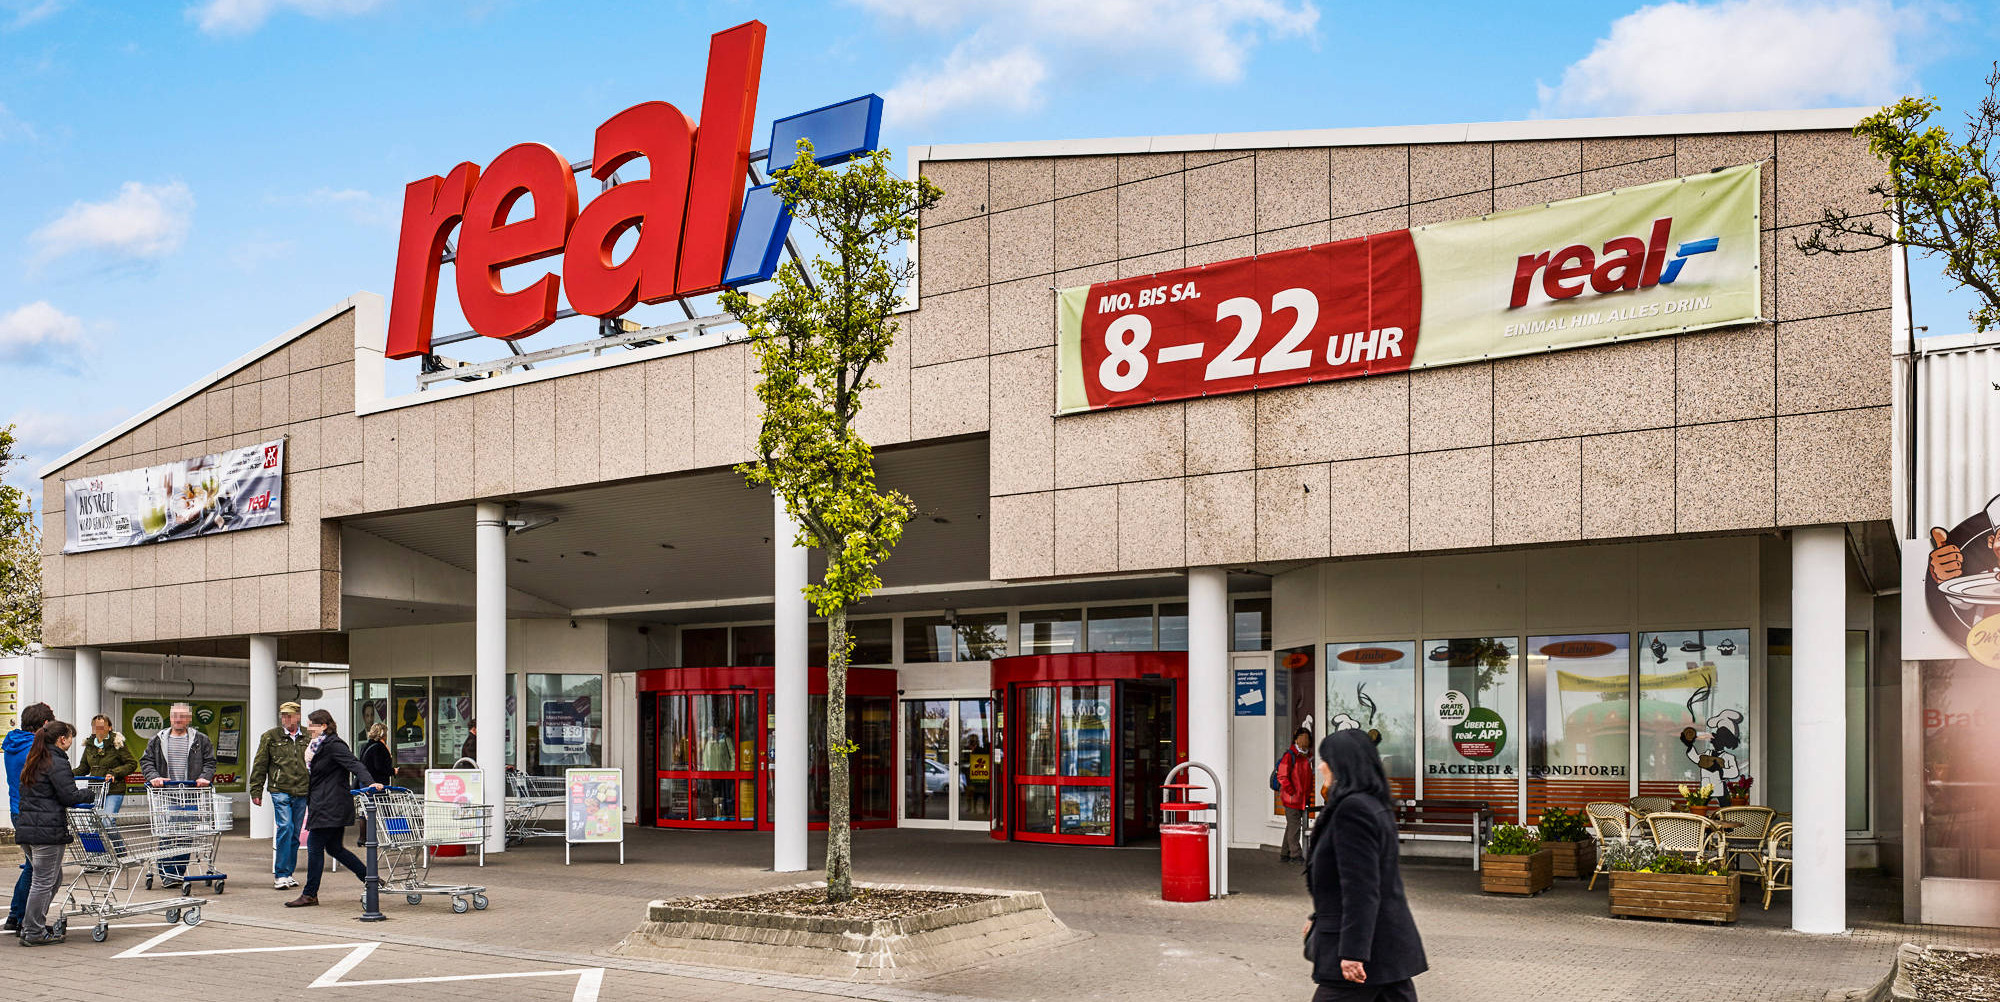 Future of Real store in Bannewitz secured